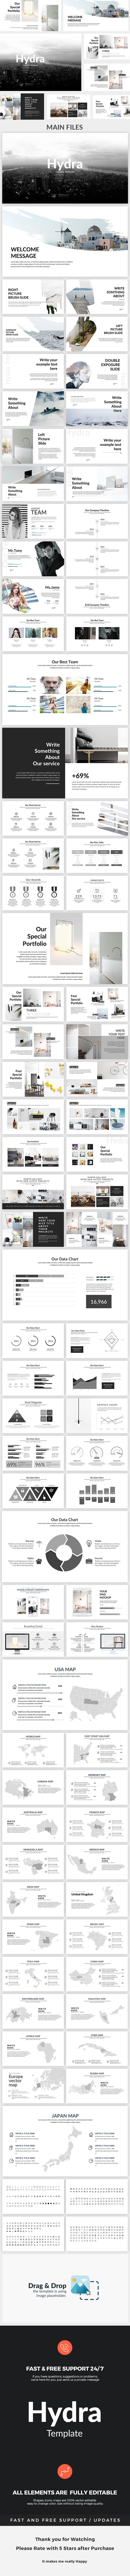 Hydra - Creative Powerpoint Template. Download here: https://graphicriver.net/item/hydra-creative-powerpoint-template/17113213?ref=ksioks                                                                                                                                                                                 More